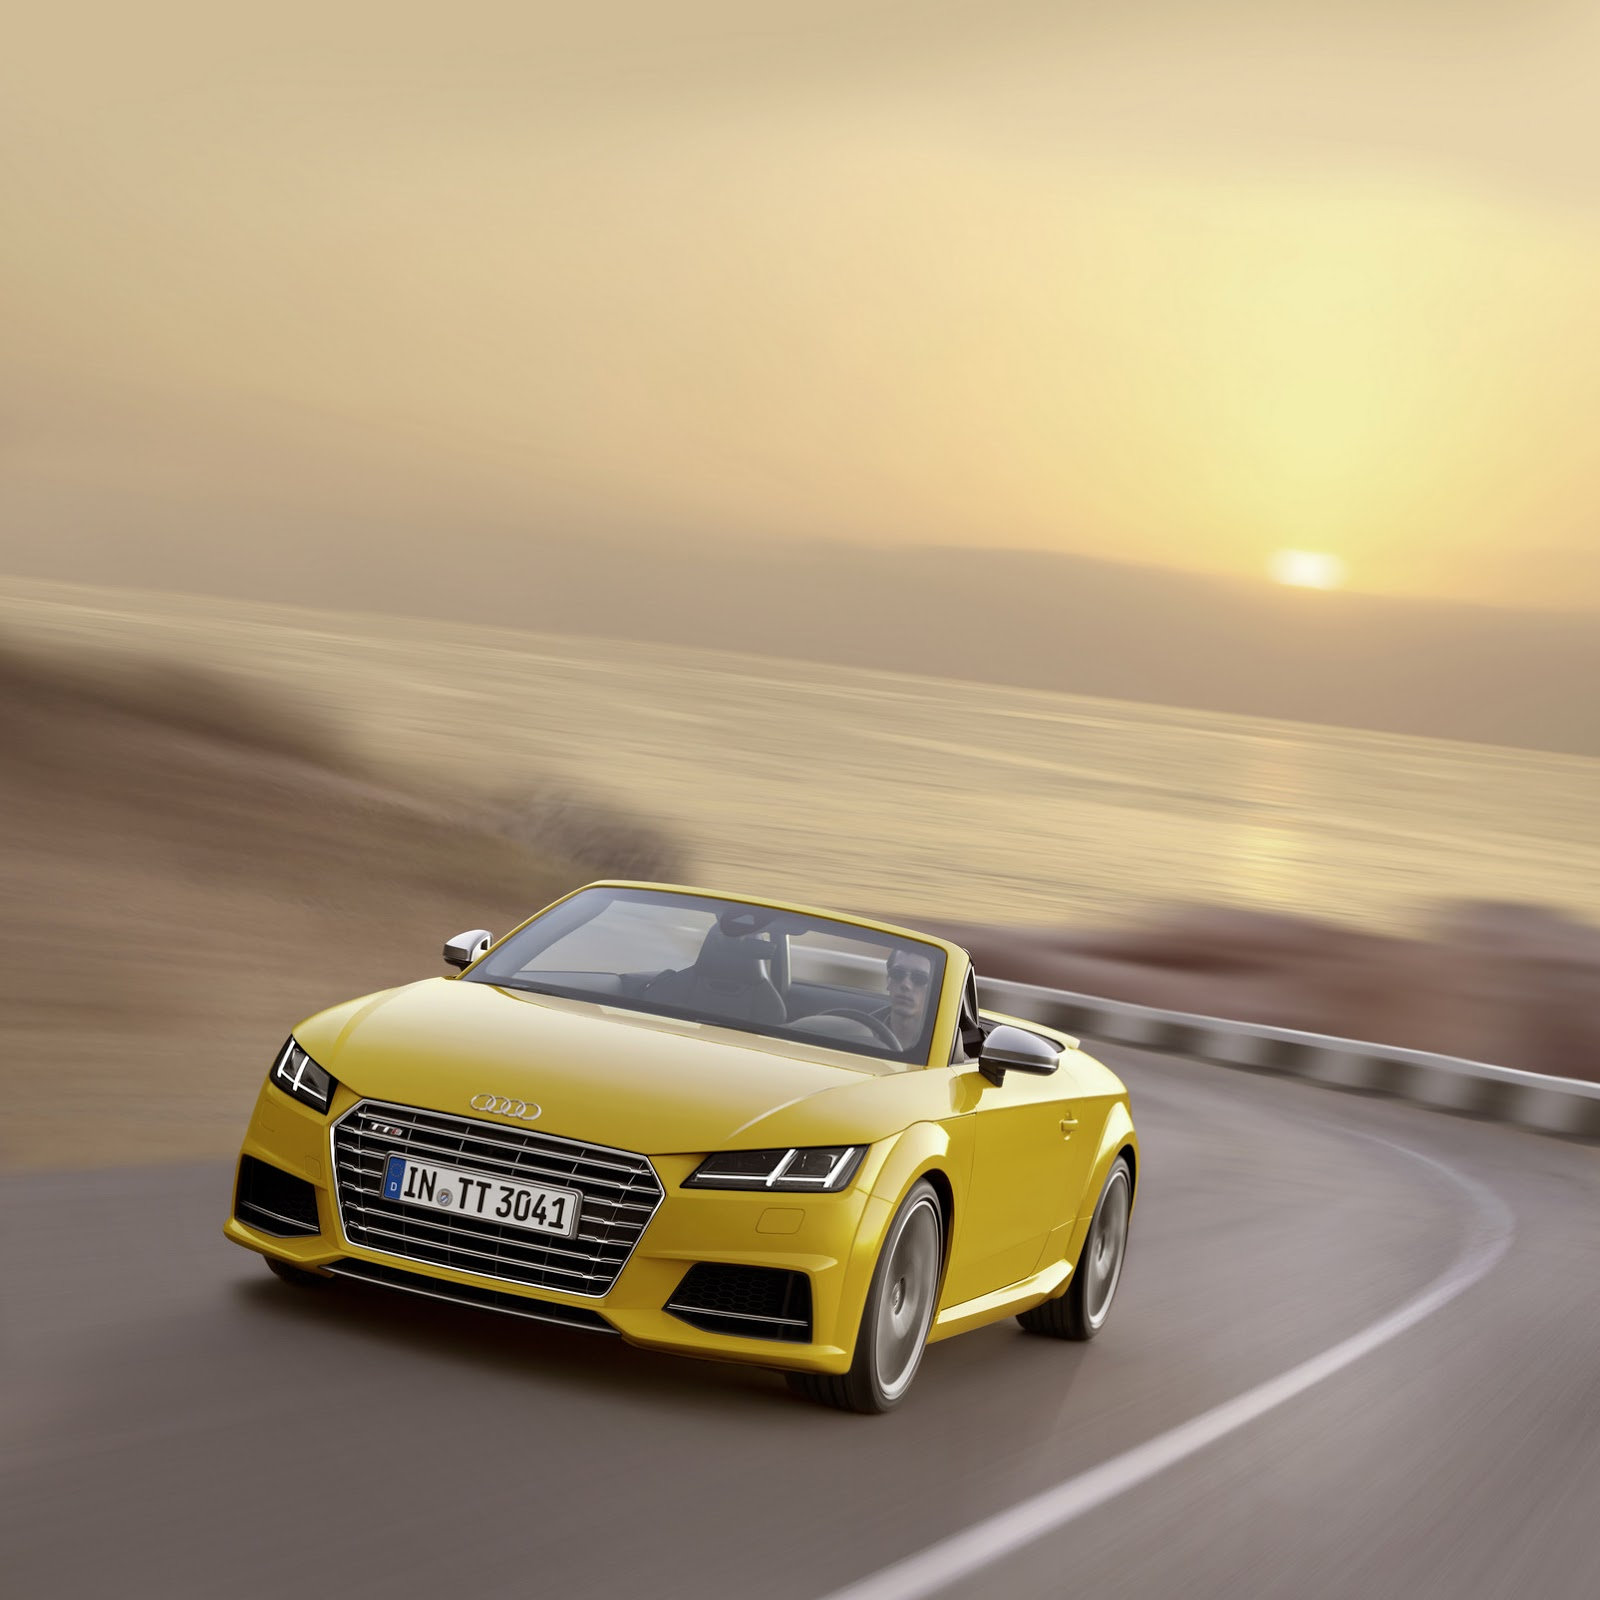 2015 Audi TT And TTS Roadster Revealed: Convertible In 10